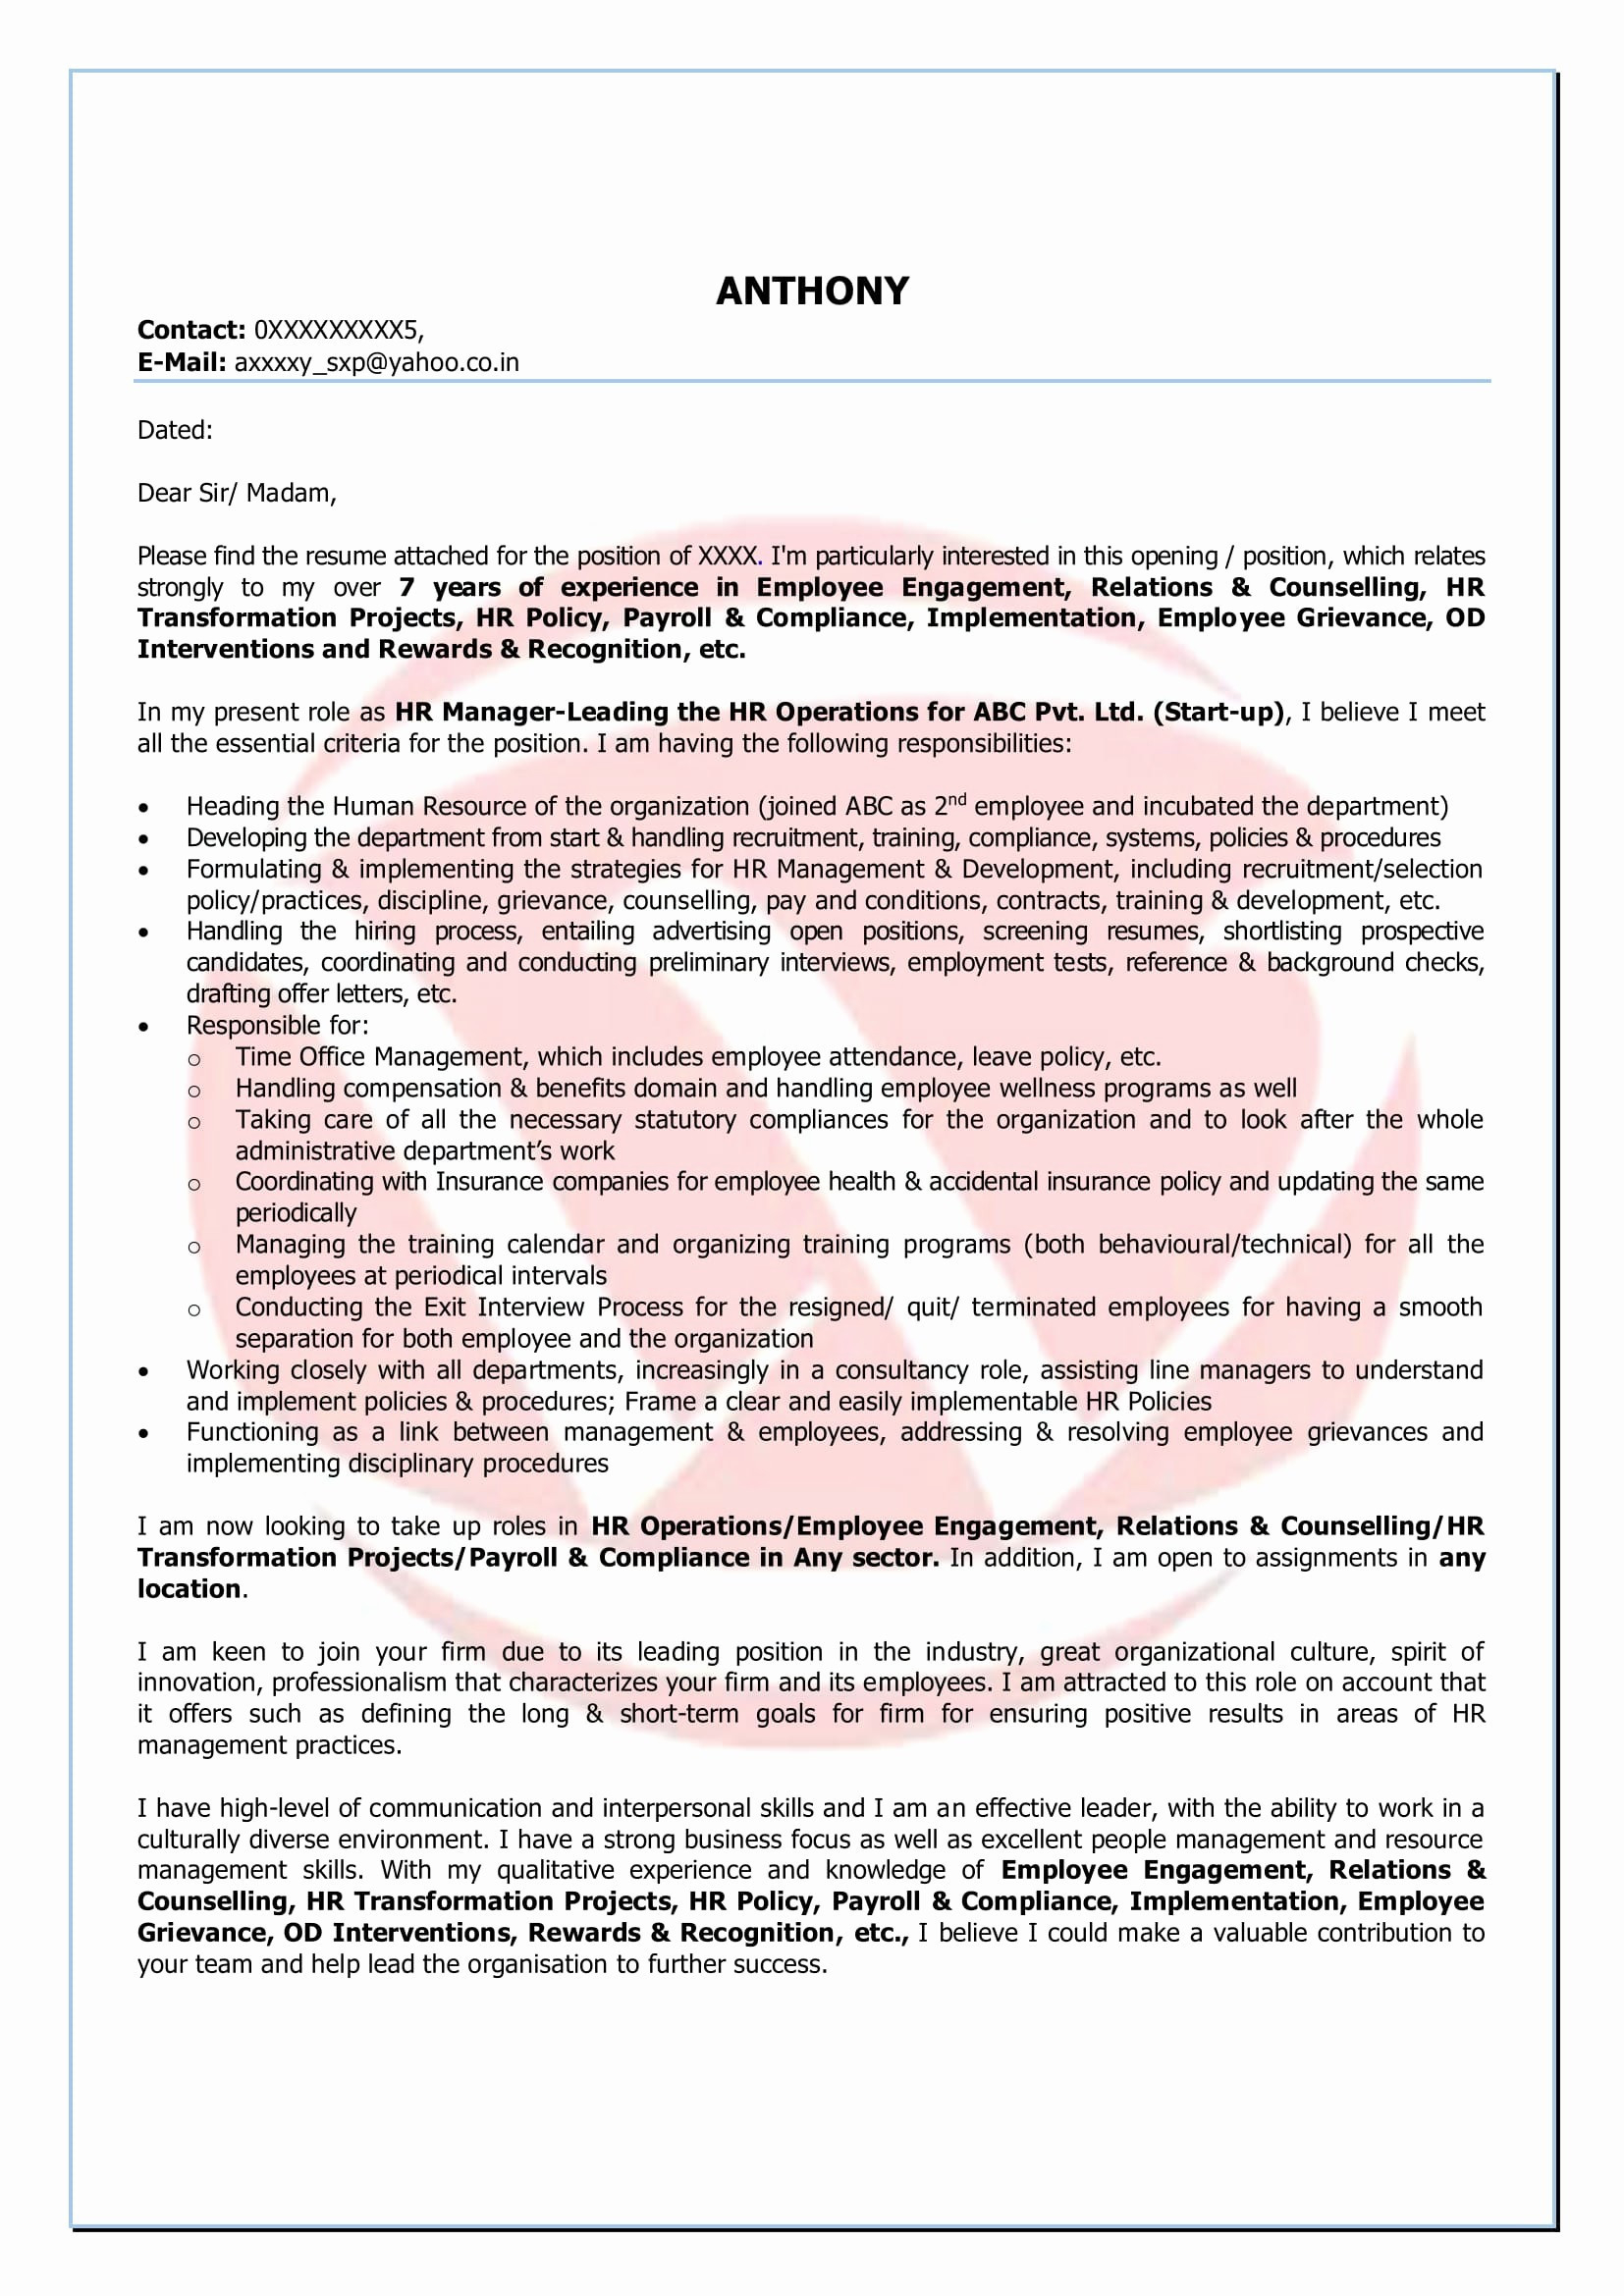 Short Cover Letter Template - 39 Beautiful Short Cover Letter Examples